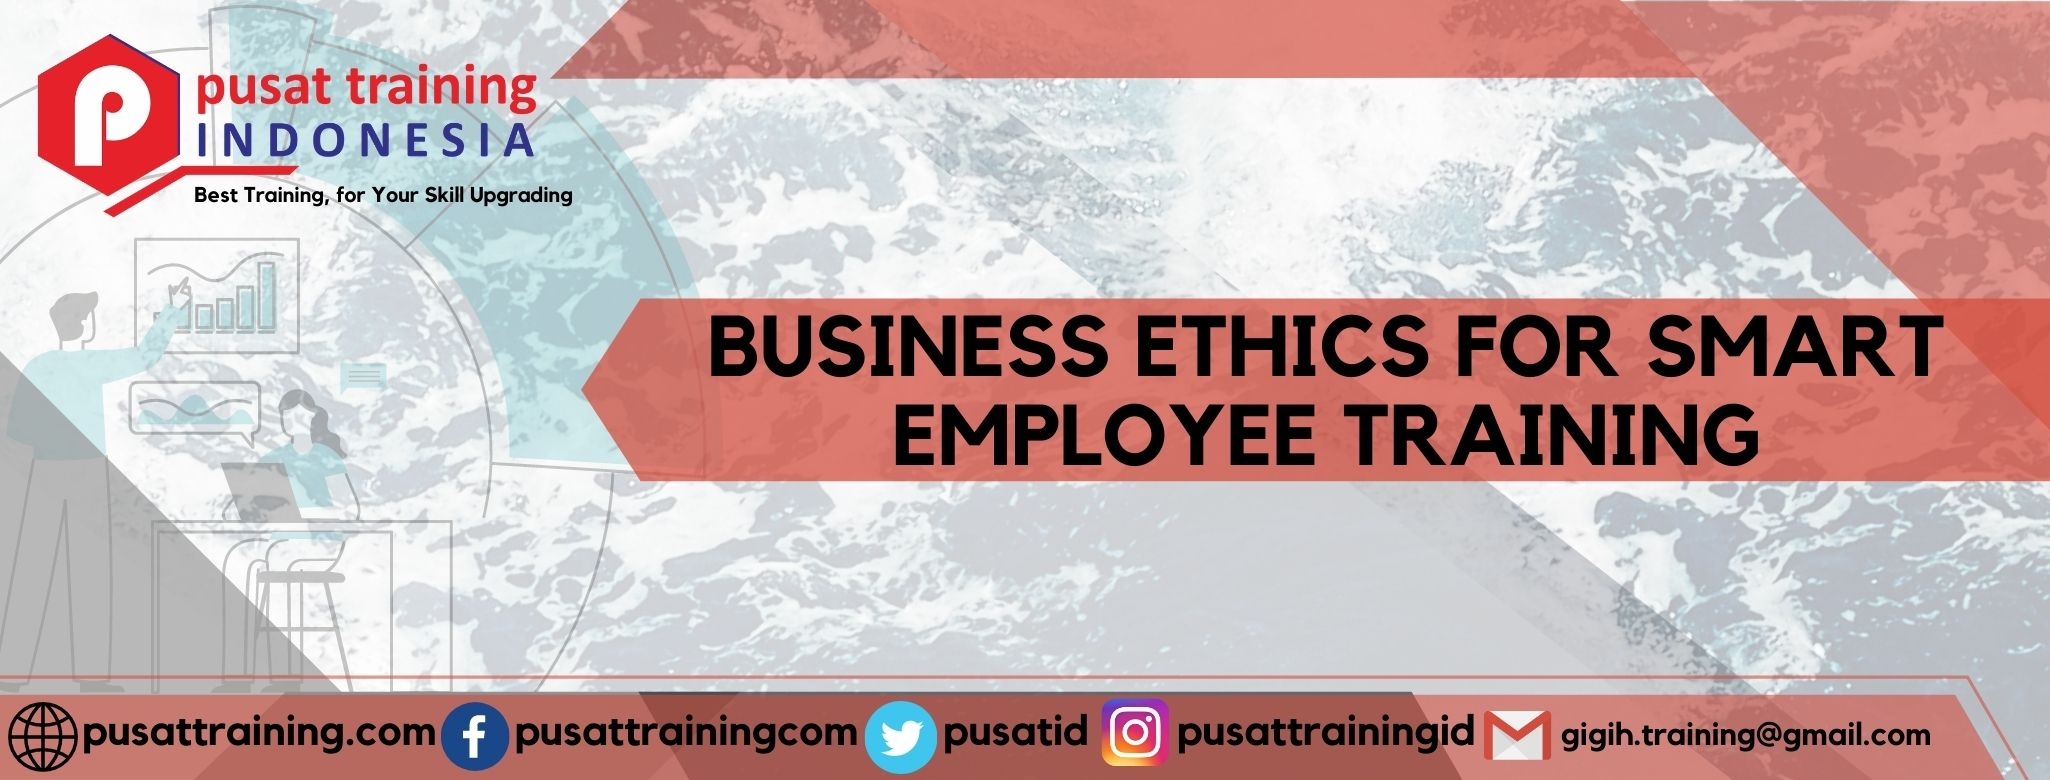 BUSINESS ETHICS FOR SMART EMPLOYEE TRAINING